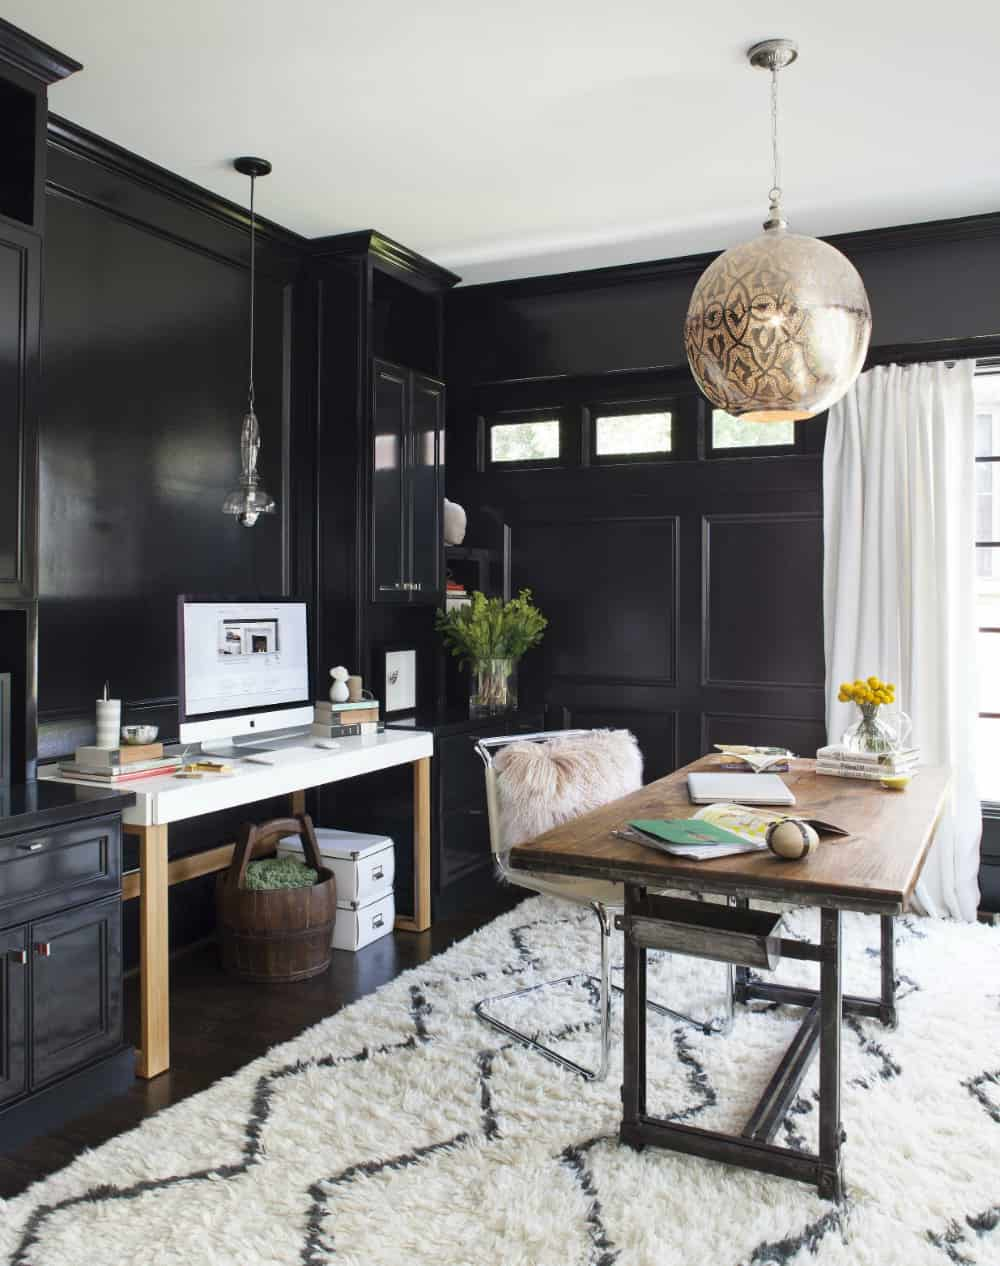 Porch-turned-home office